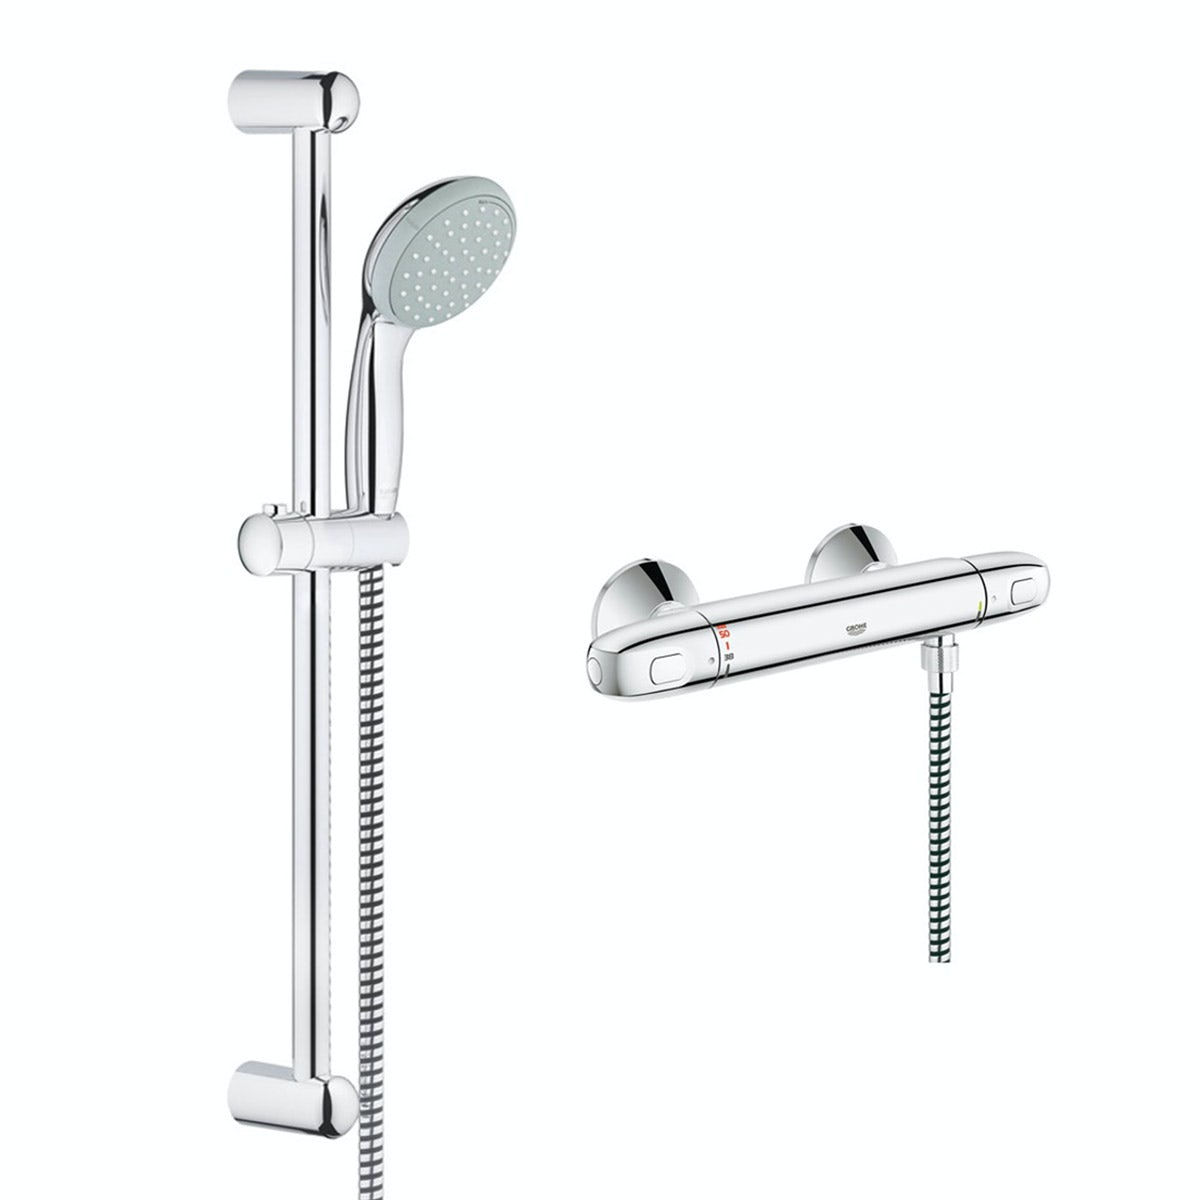 grohe grohtherm 1000 thermostatic shower set. Black Bedroom Furniture Sets. Home Design Ideas